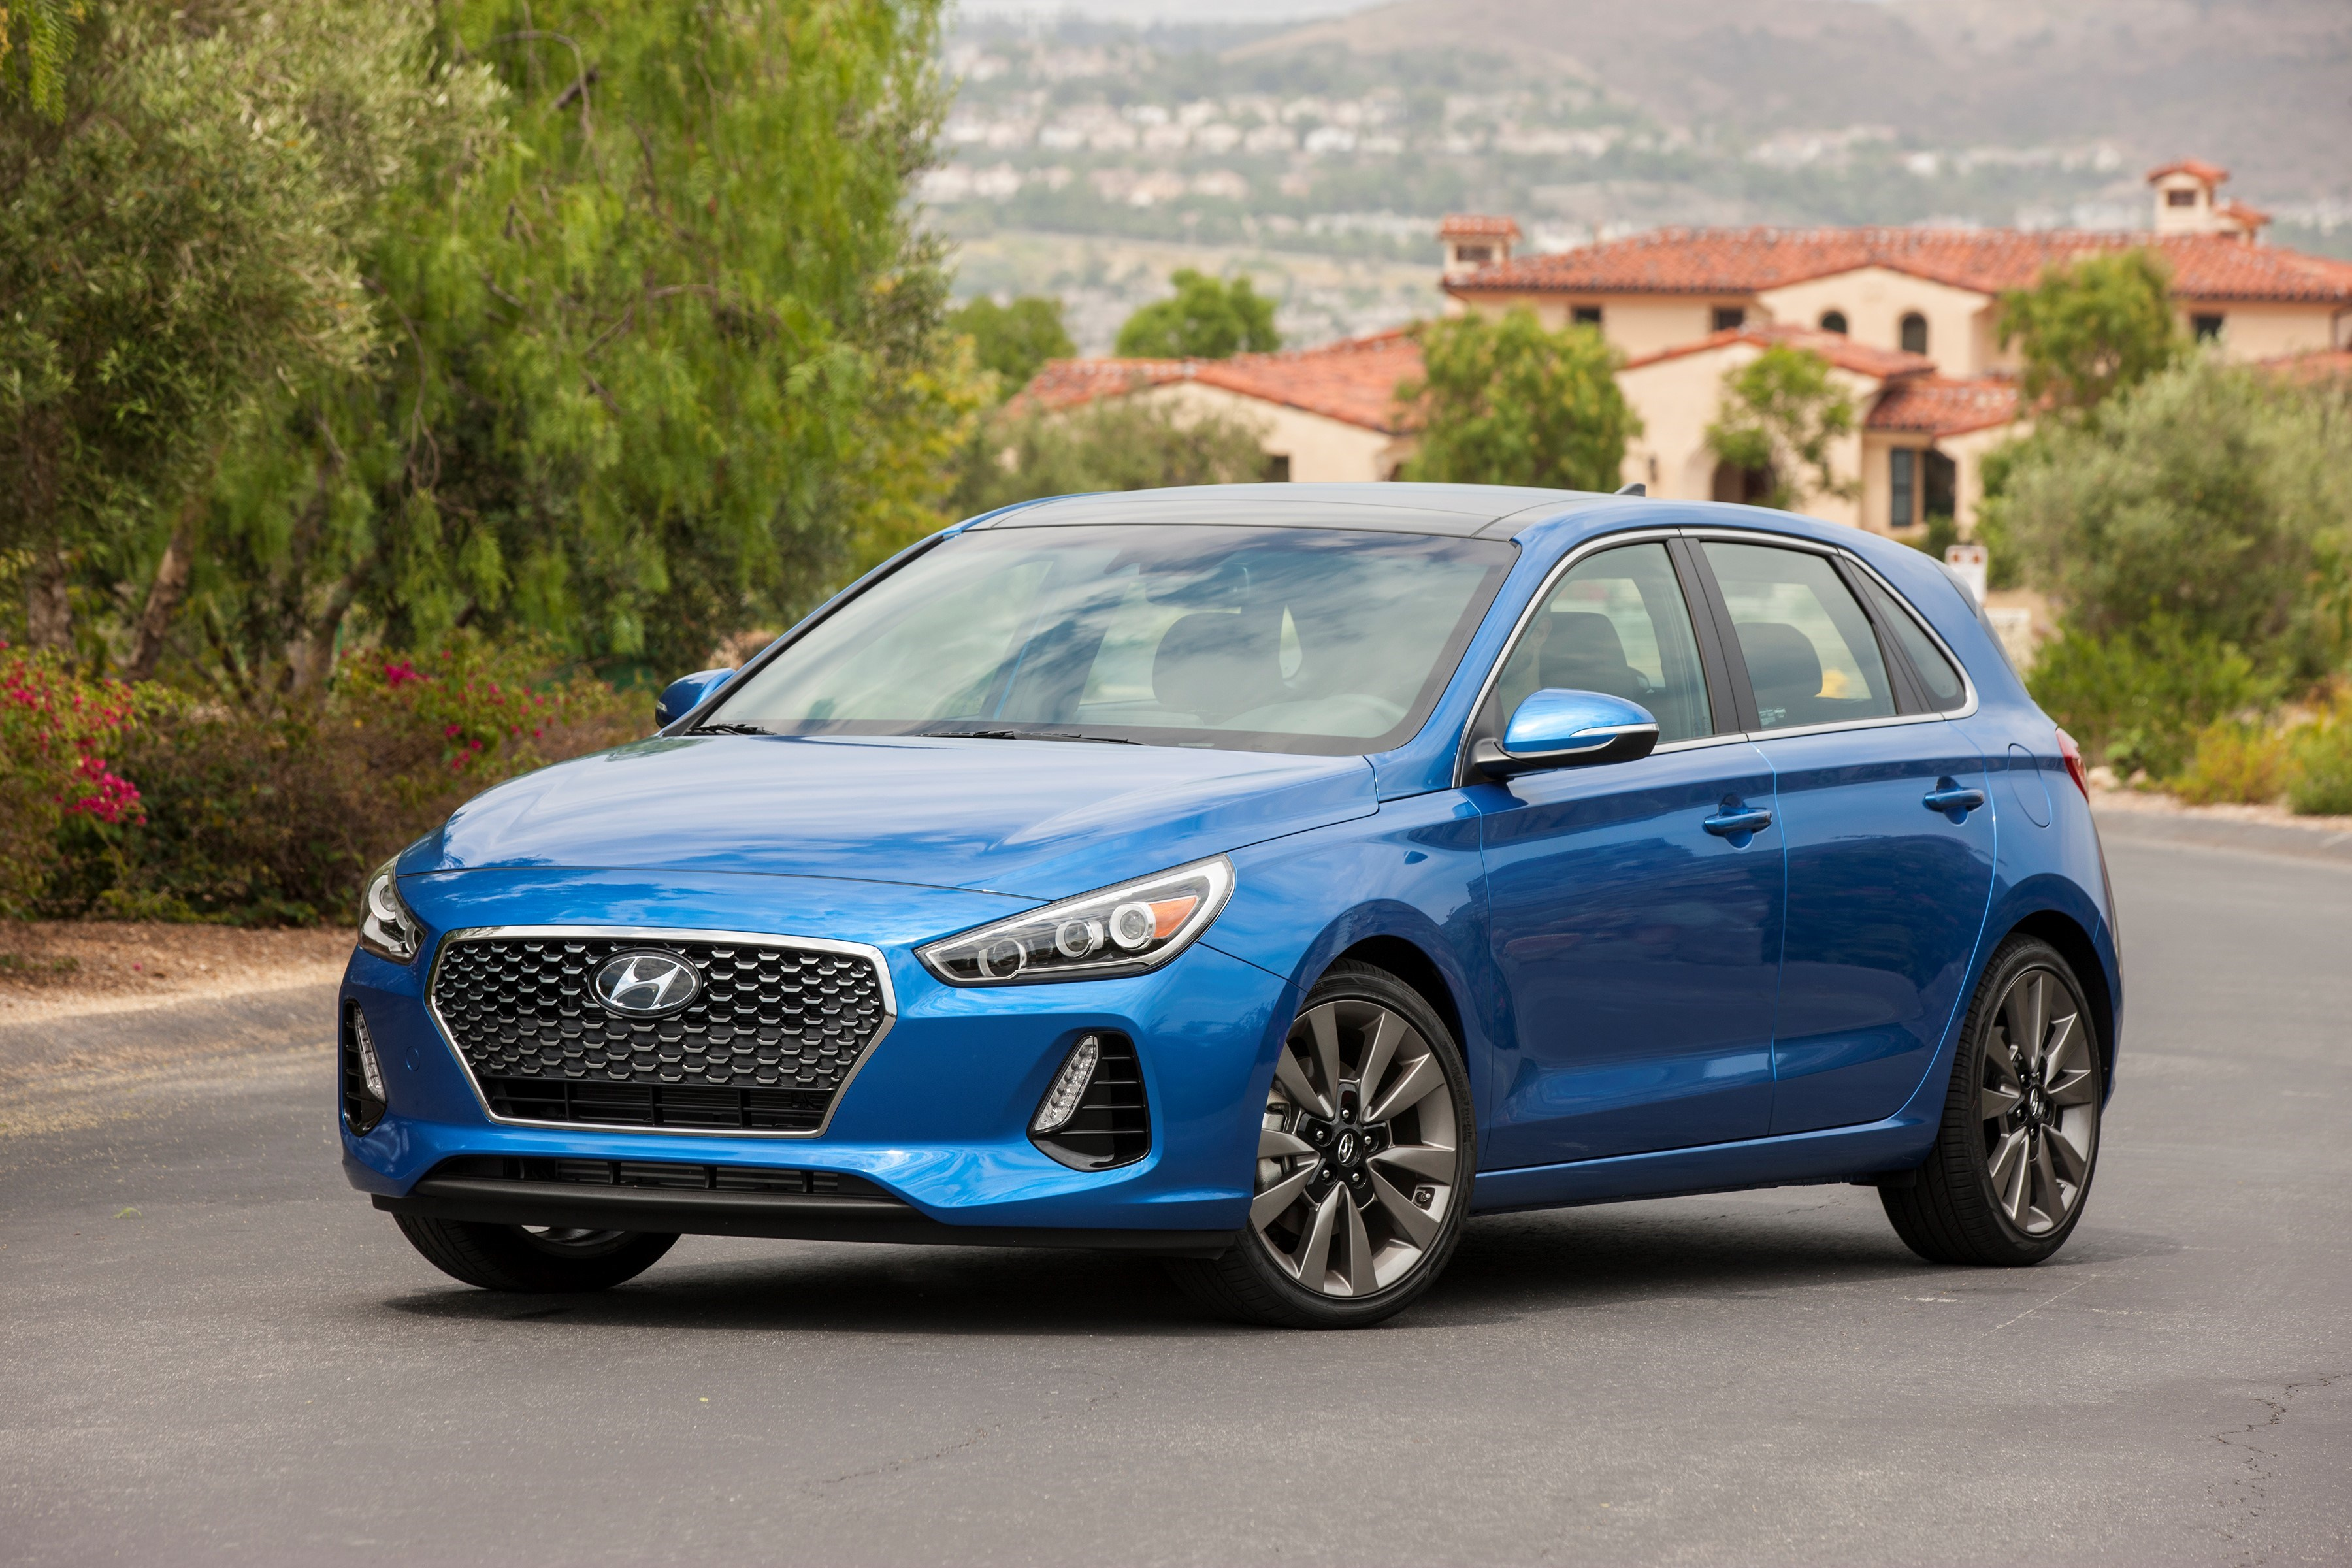 2018 Hyundai Elantra GT Overview - The News Wheel